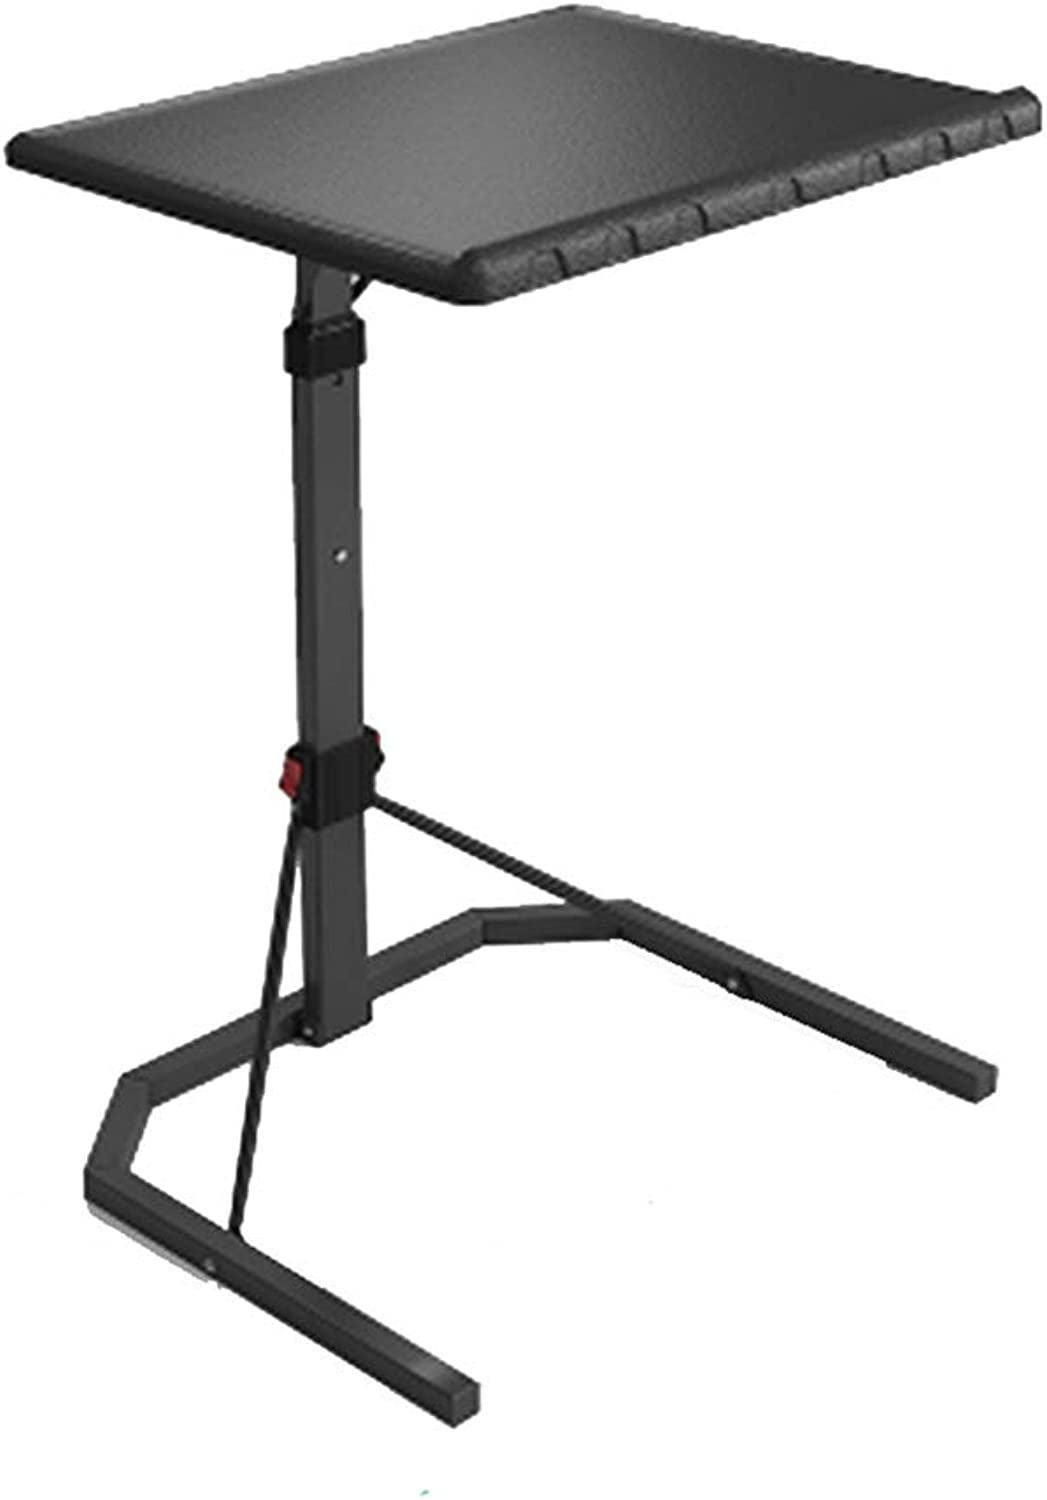 Small Coffee Table Creative Side Table Carbon Steel Lifting Folding Multi-Function Computer Table (Size   51  45  76cm)